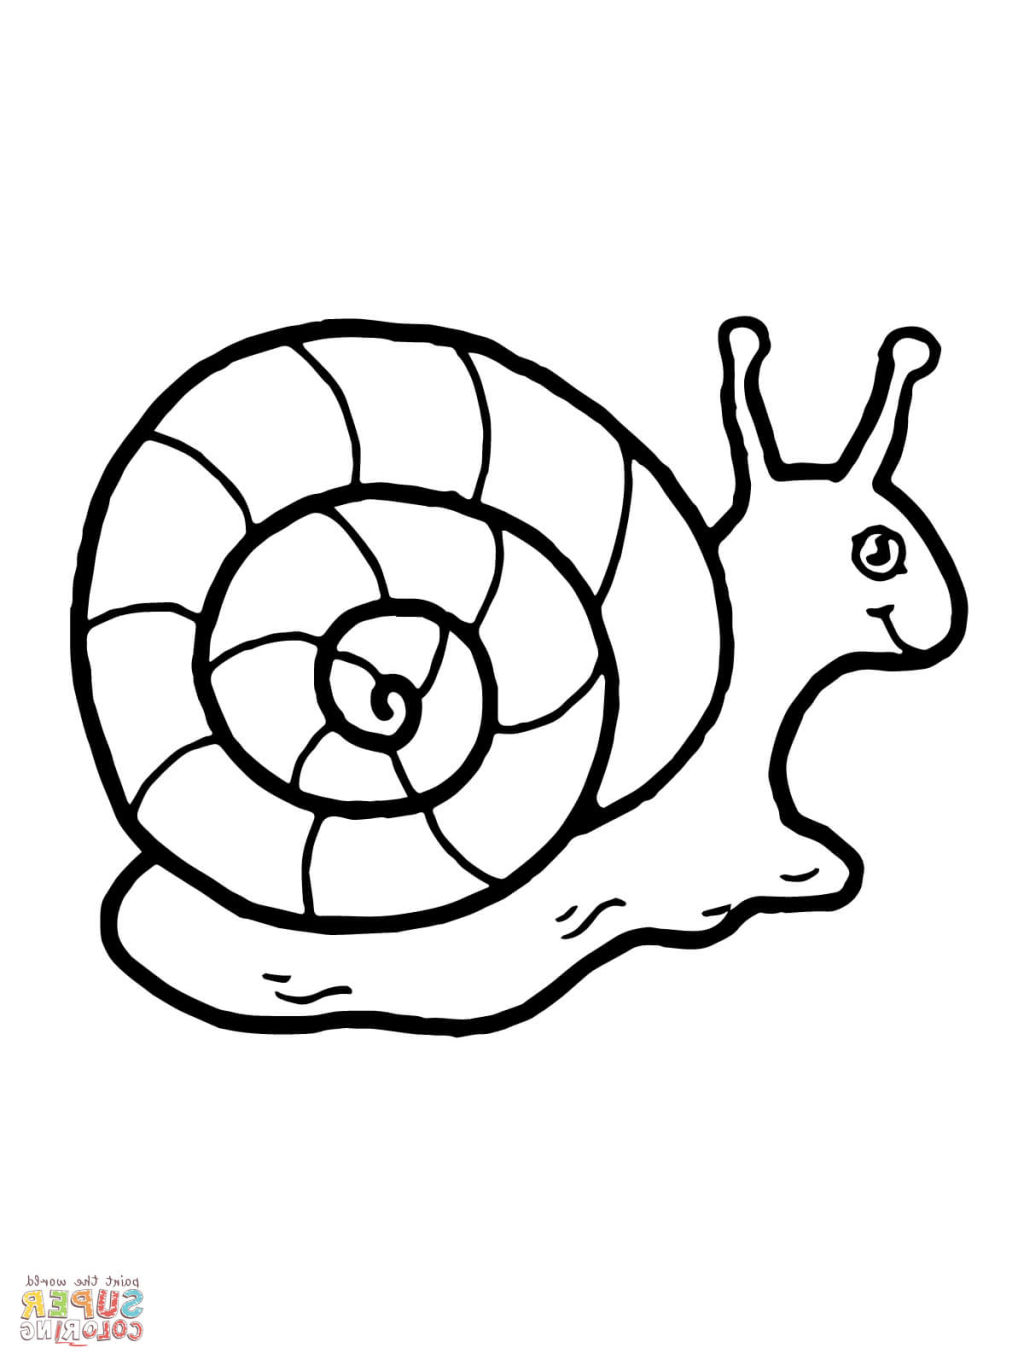 snail coloring page garden snail coloring page free printable coloring pages snail page coloring